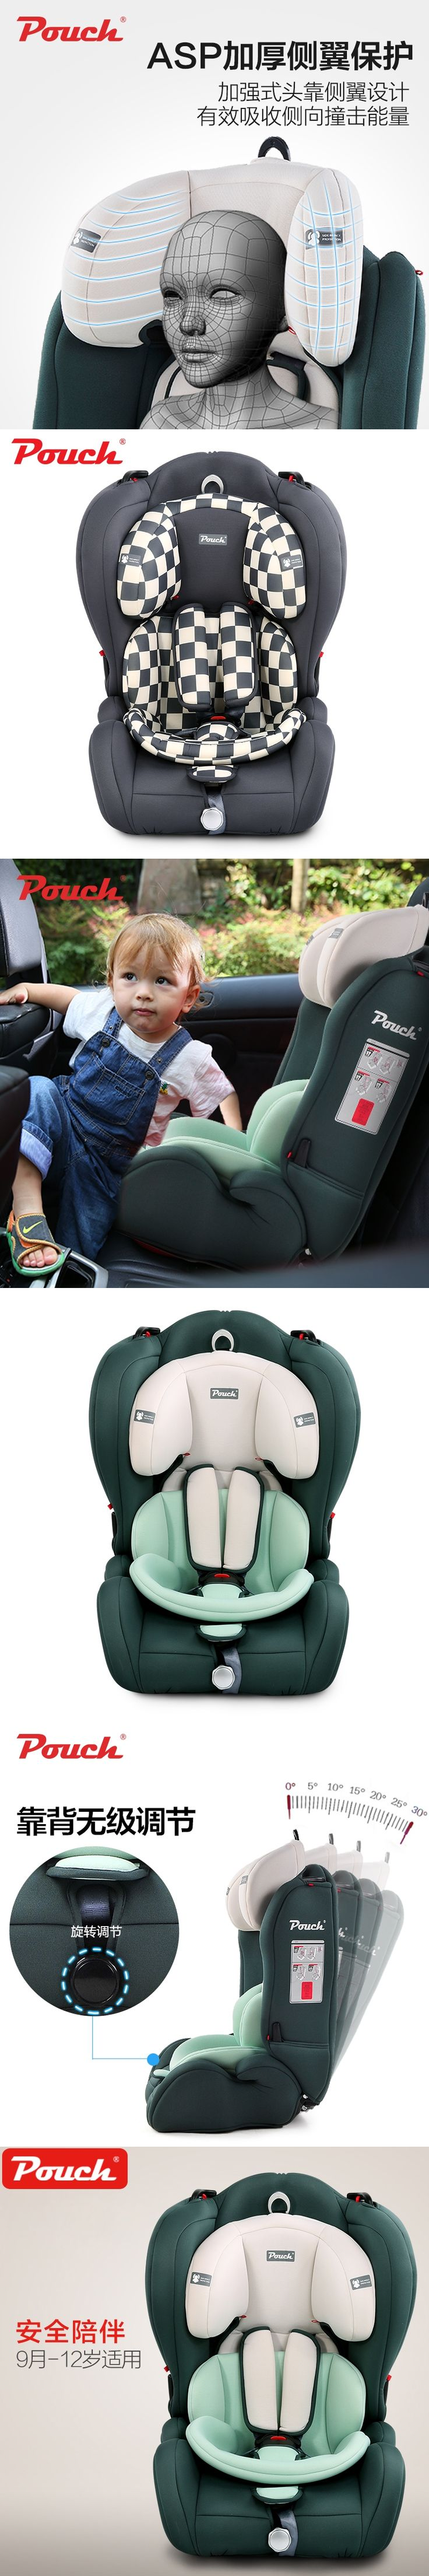 Pouch child safety seat 9 months -12 years old car baby security seat car portable car seat